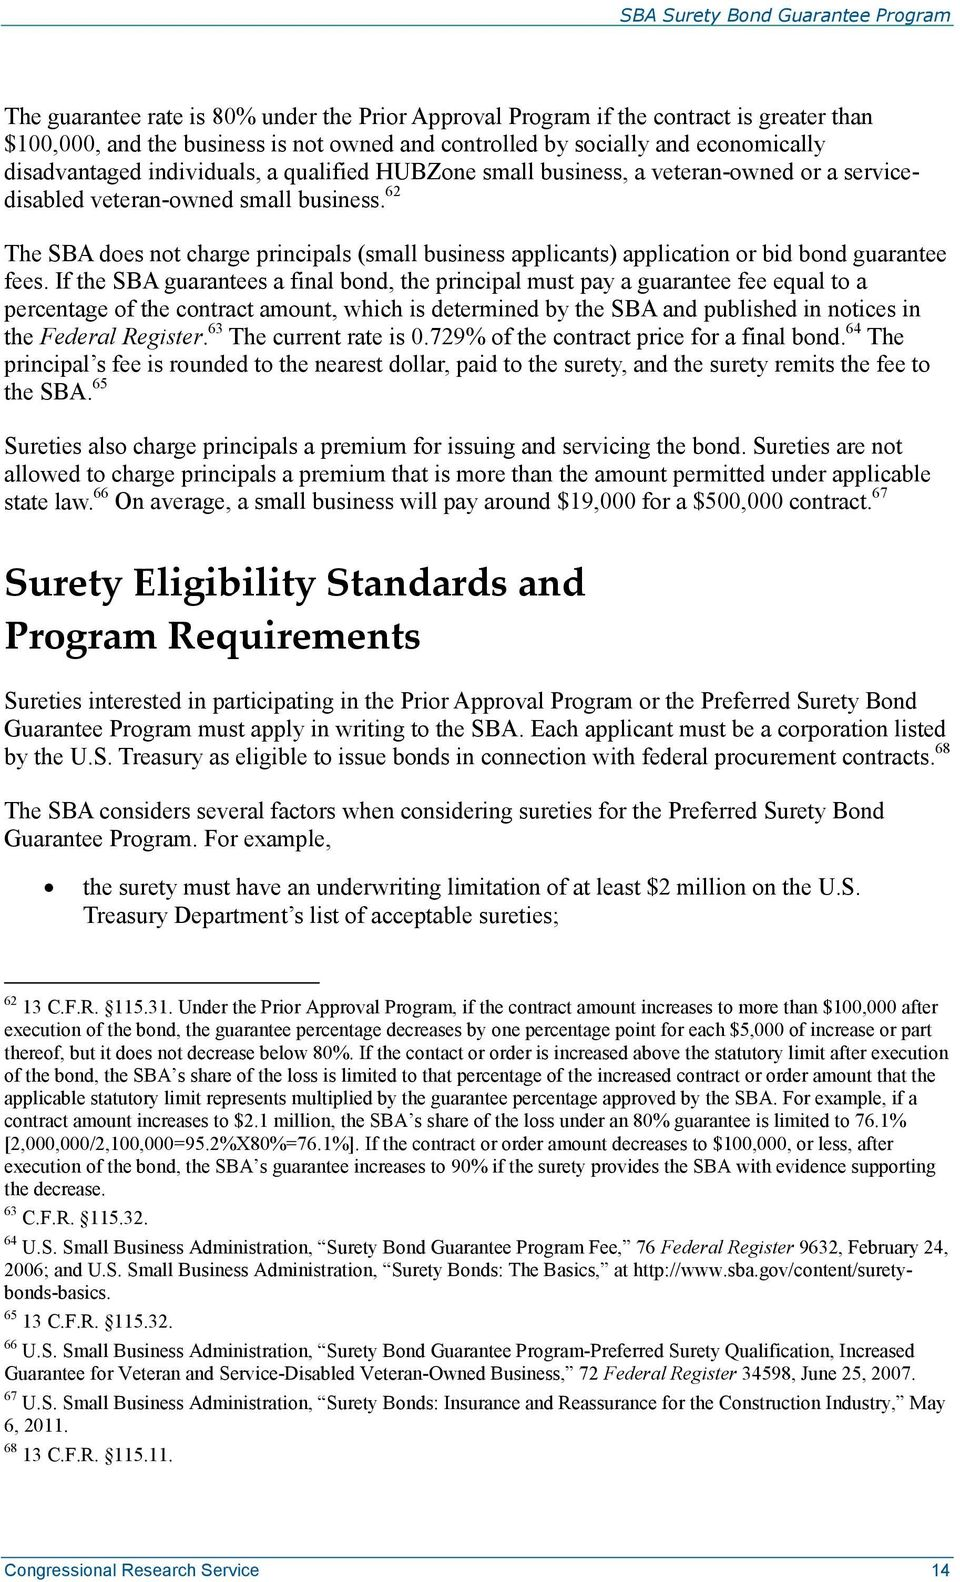 62 The SBA does not charge principals (small business applicants) application or bid bond guarantee fees.